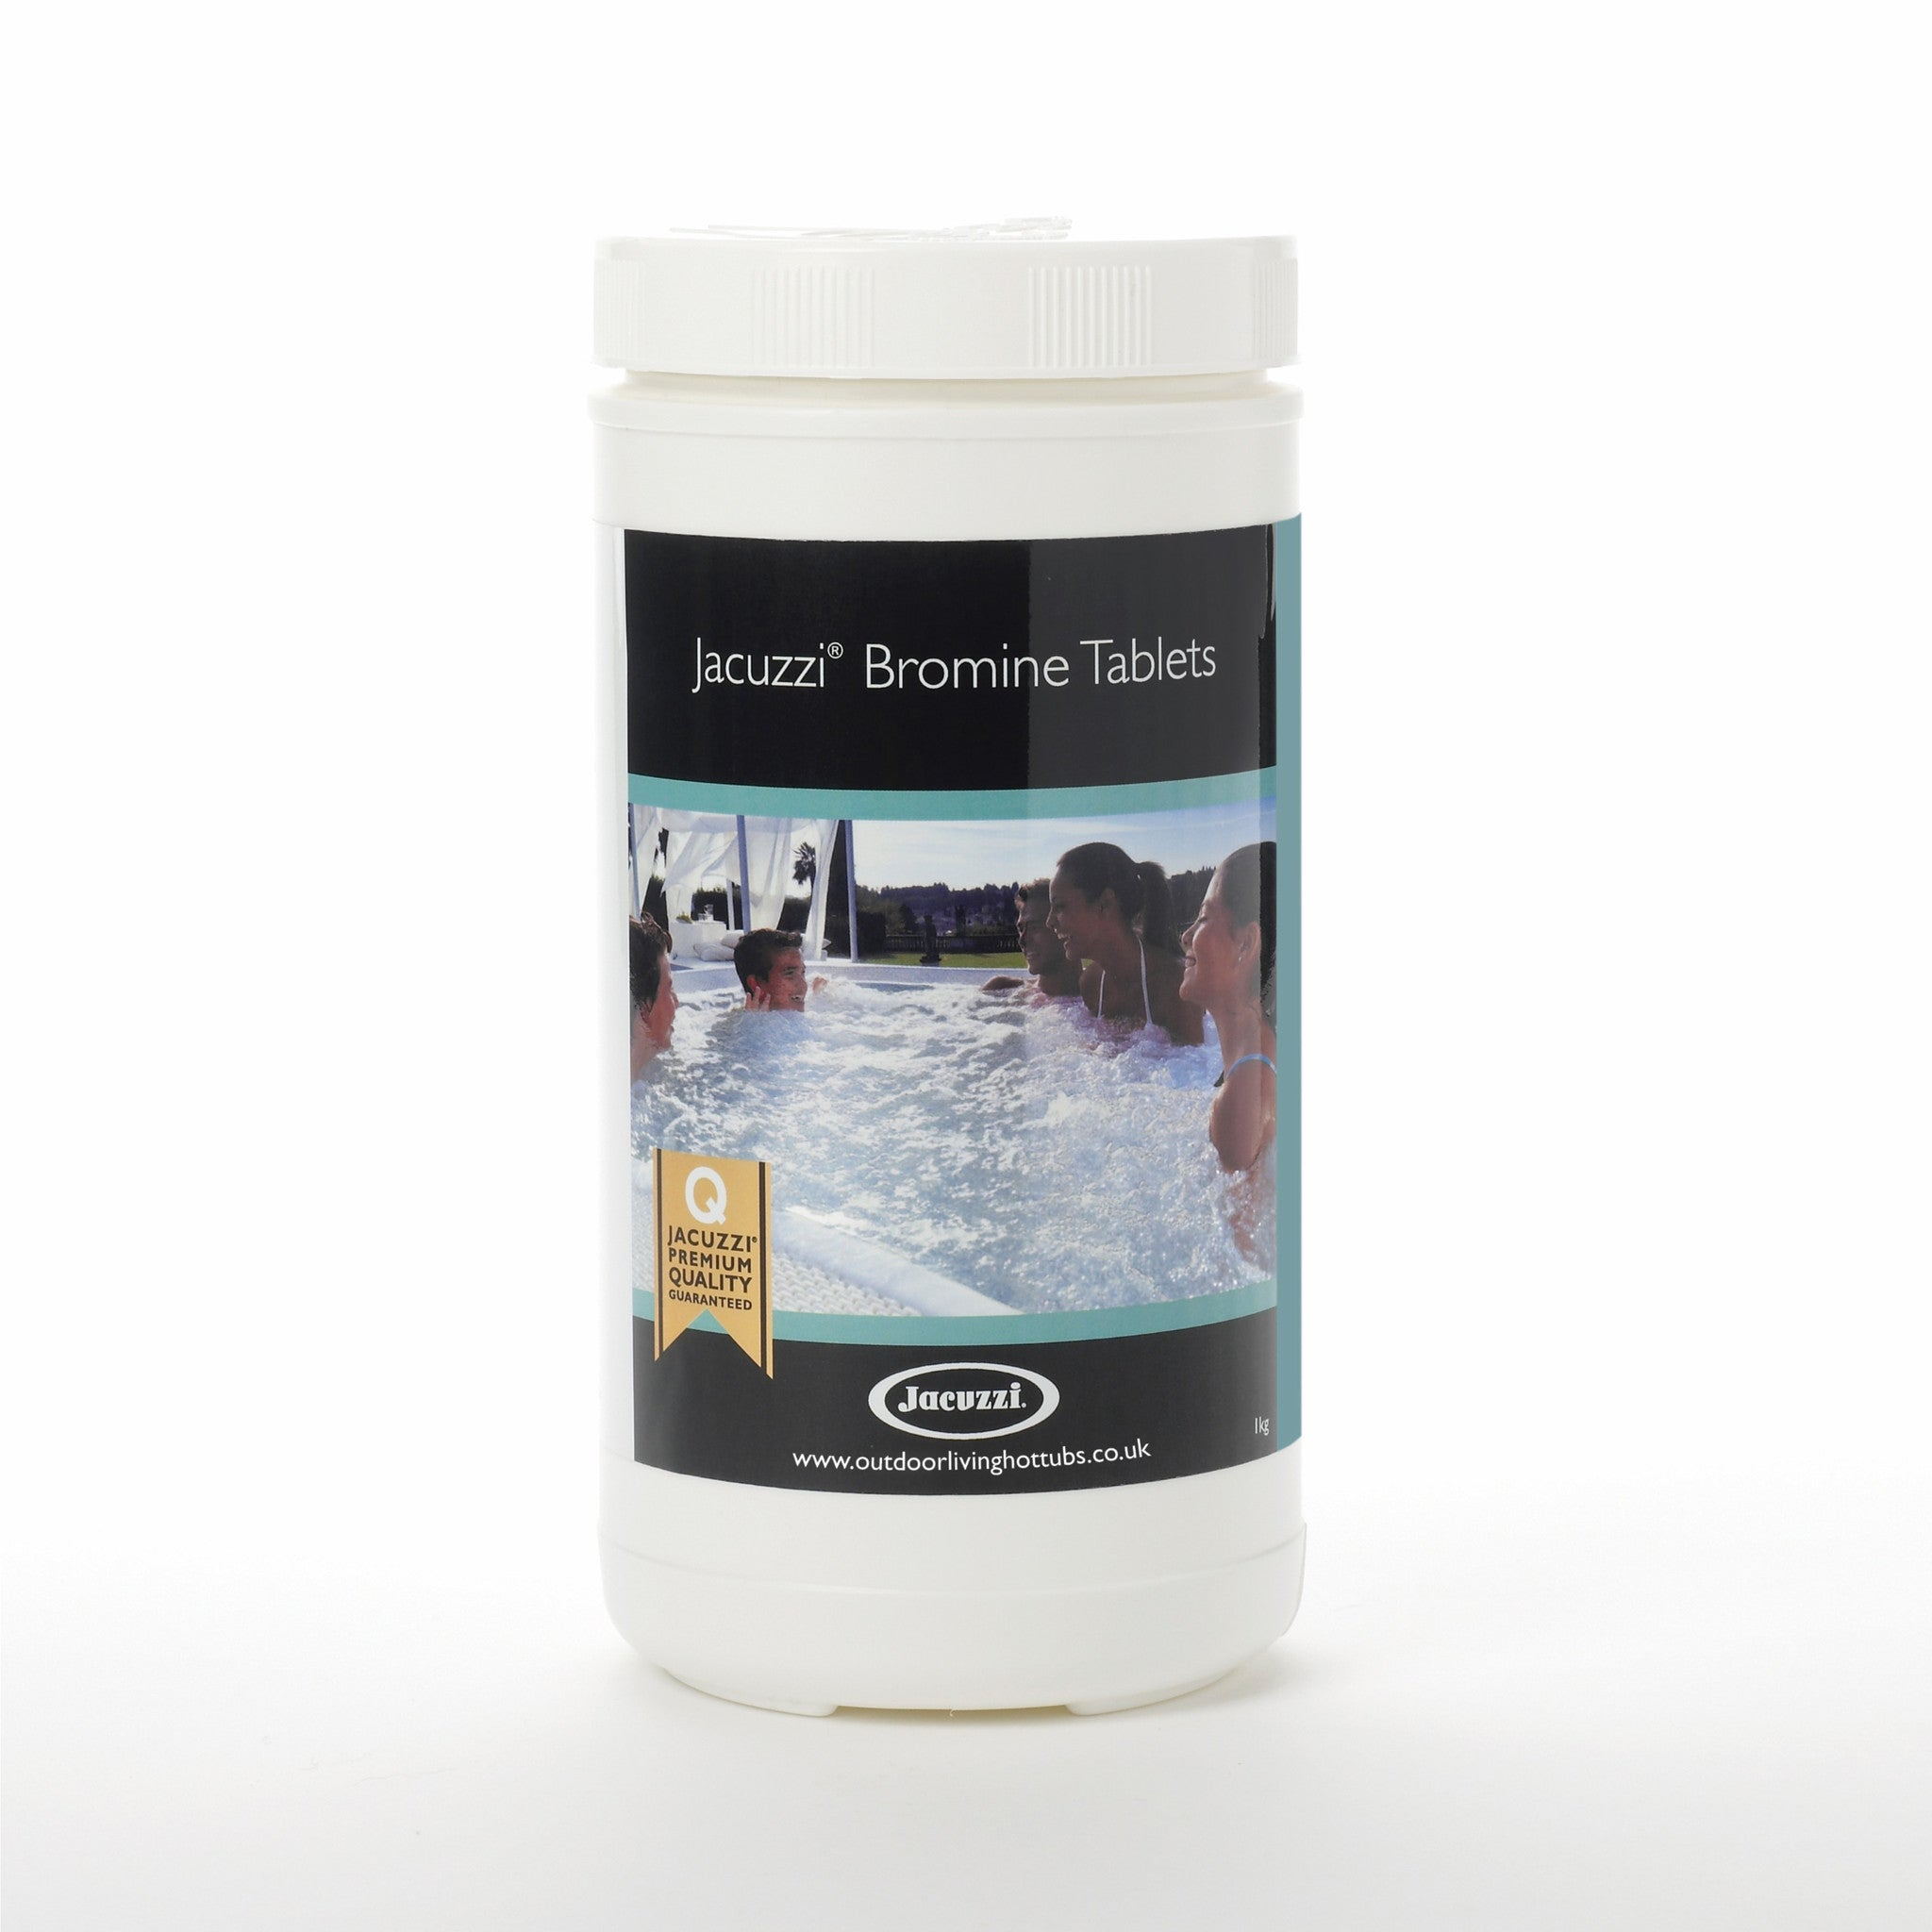 Jacuzzi Bromine Tablets | Jacuzzi Direct